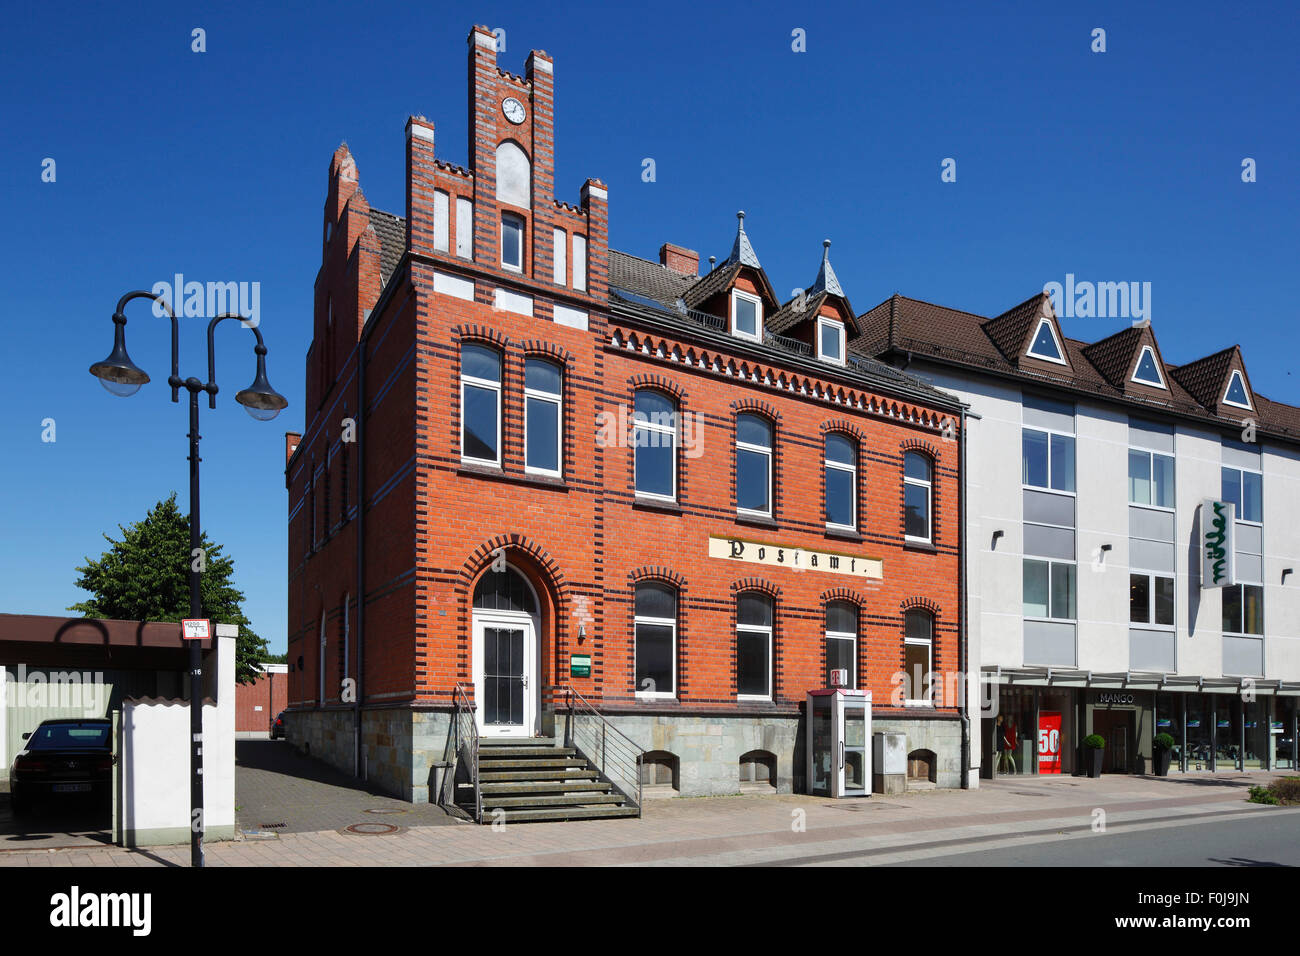 Postamt in Salzkotten, Nordrhein-Westfalen Stock Photo